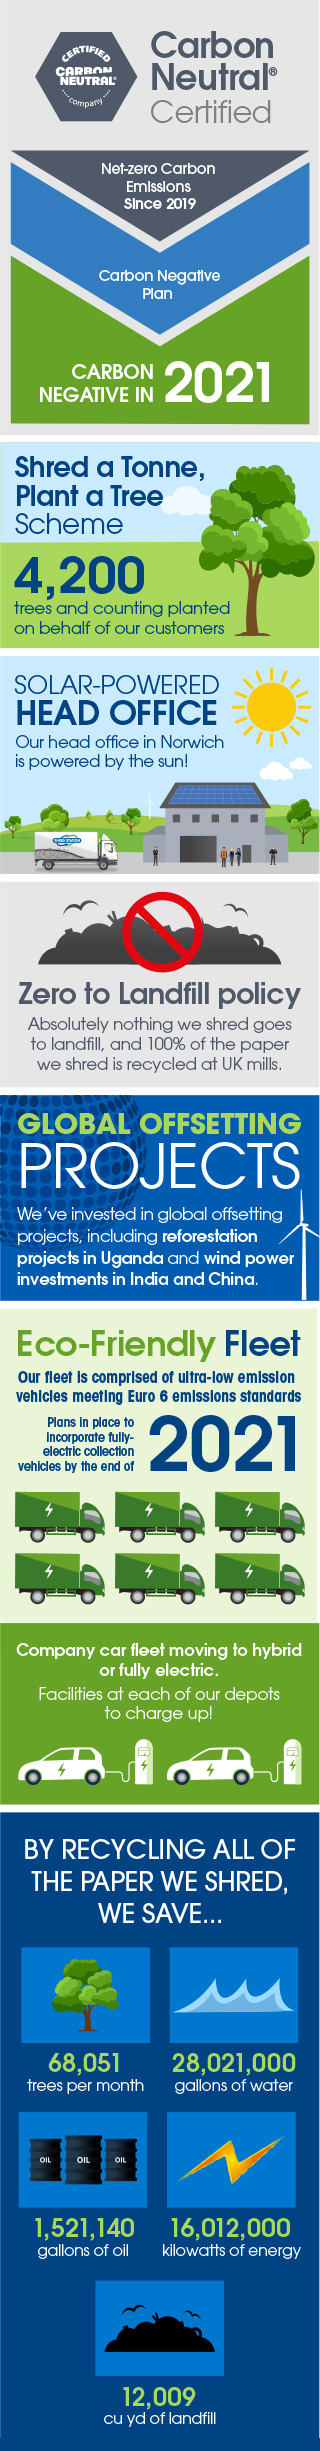 Carbon offset infographic - small